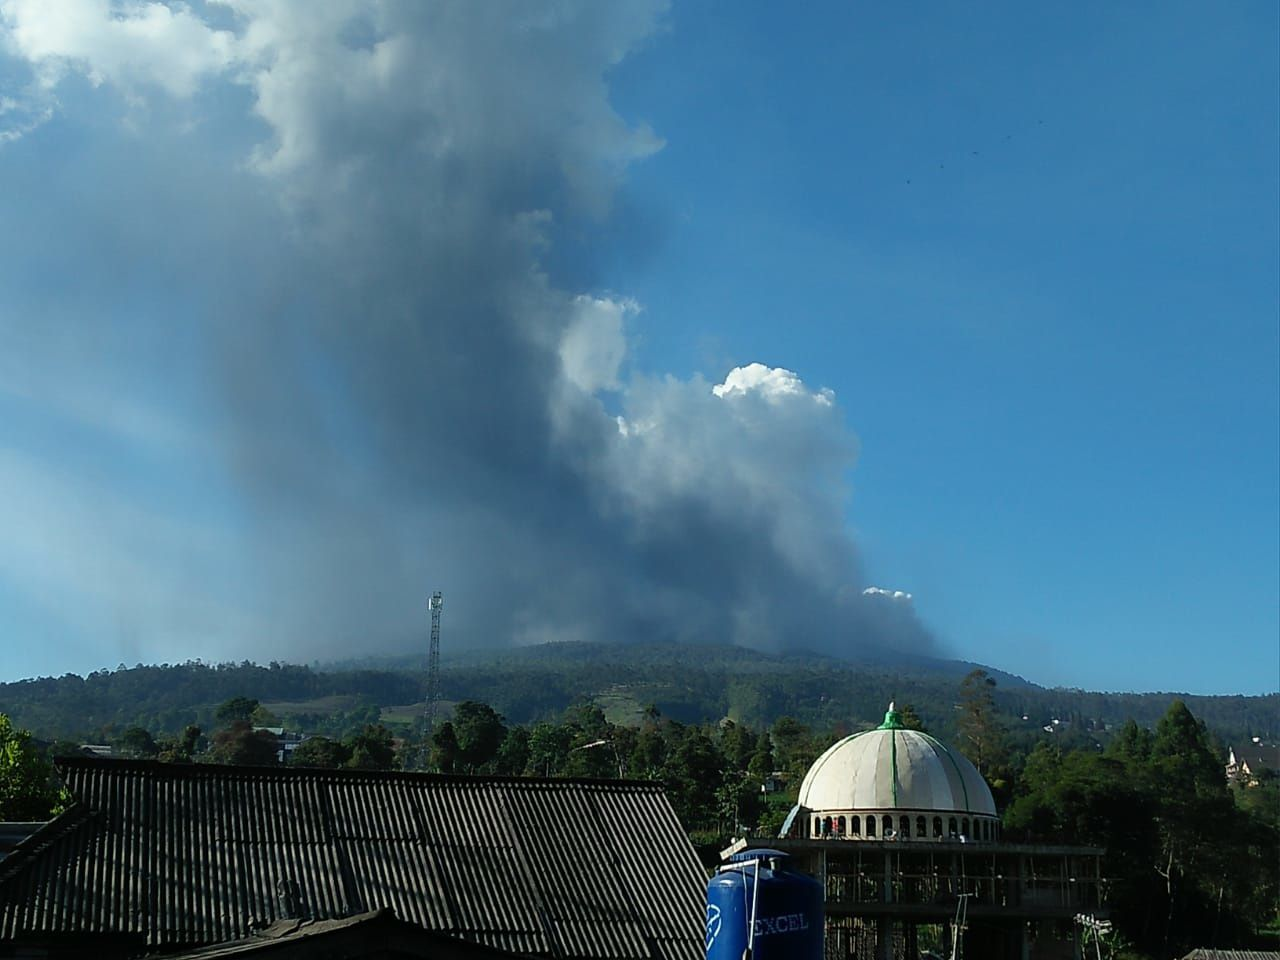 Tangkuban Perahu - eruptive plume - photo BNPB 26.07.2019